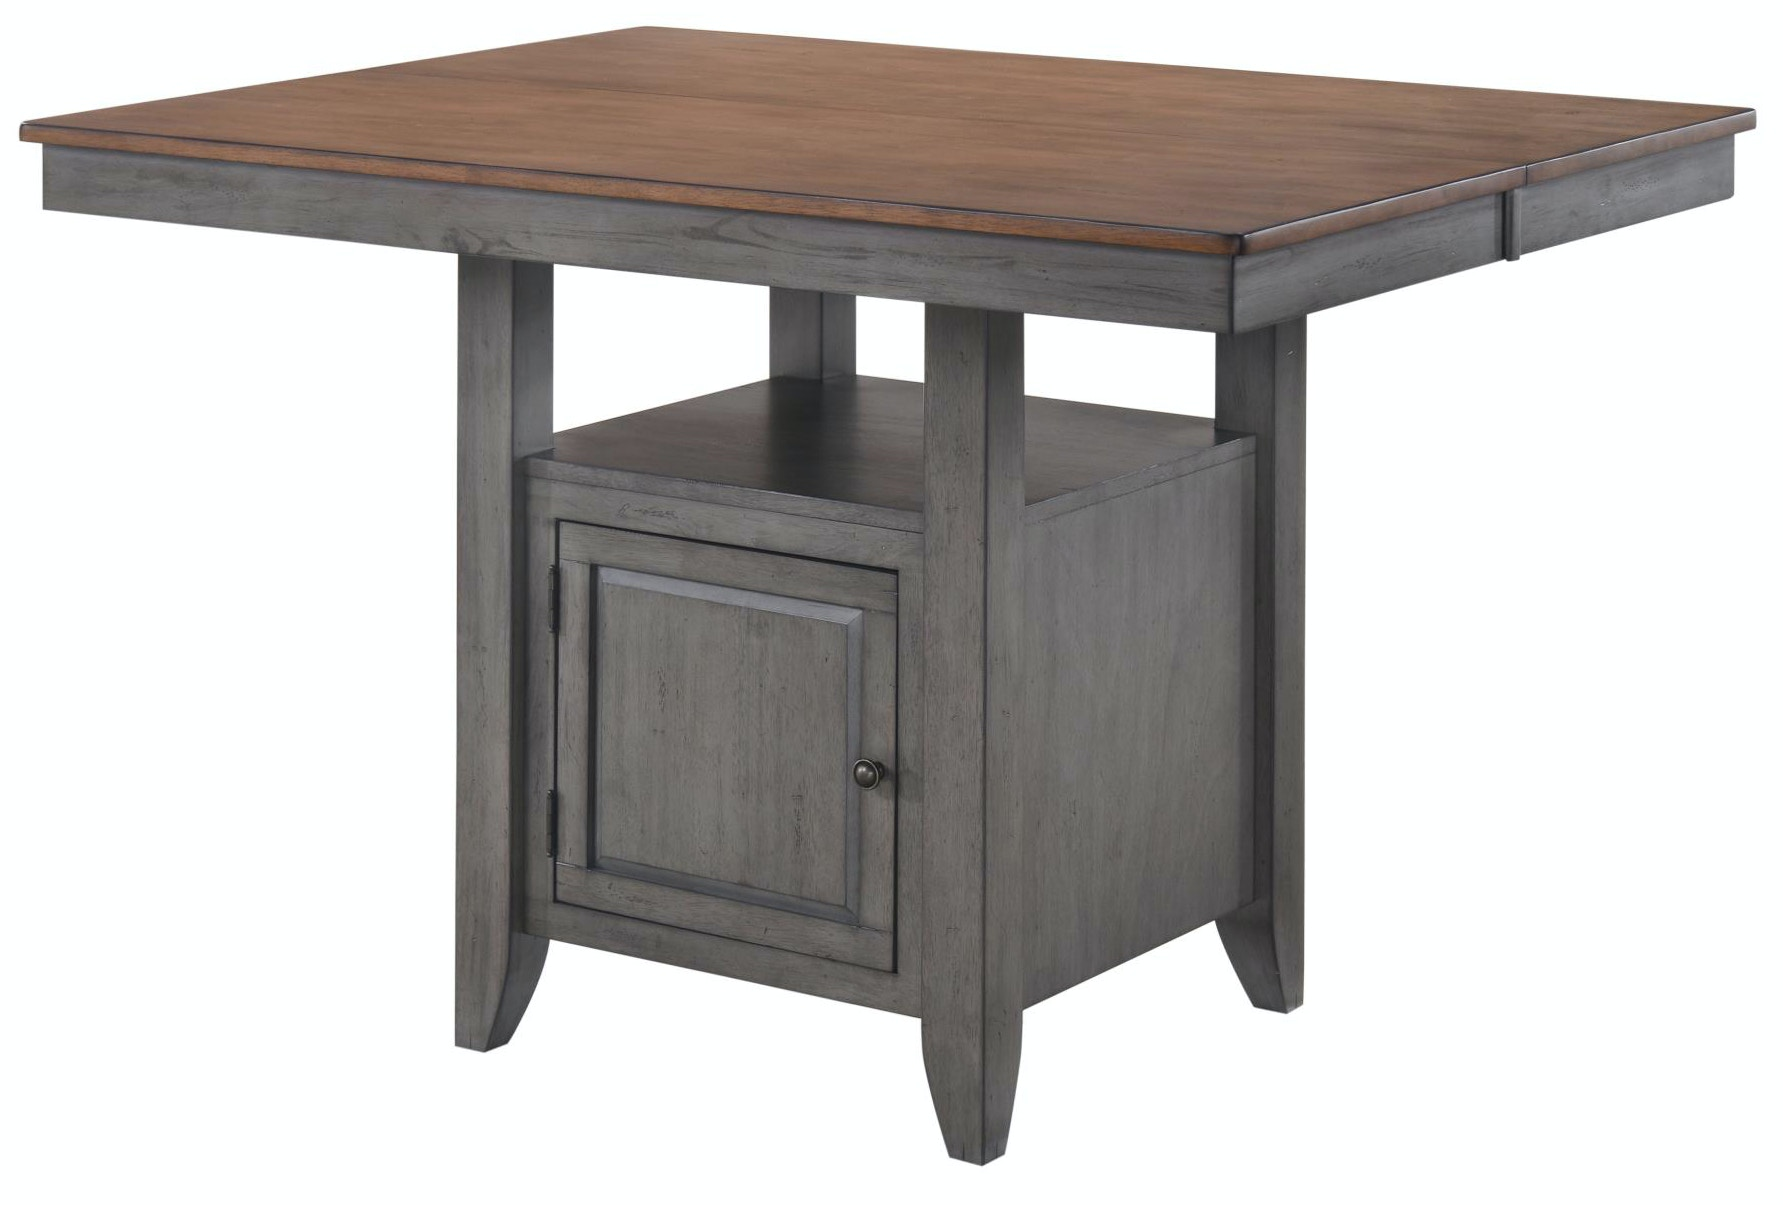 Dining Room Table With Storage Base